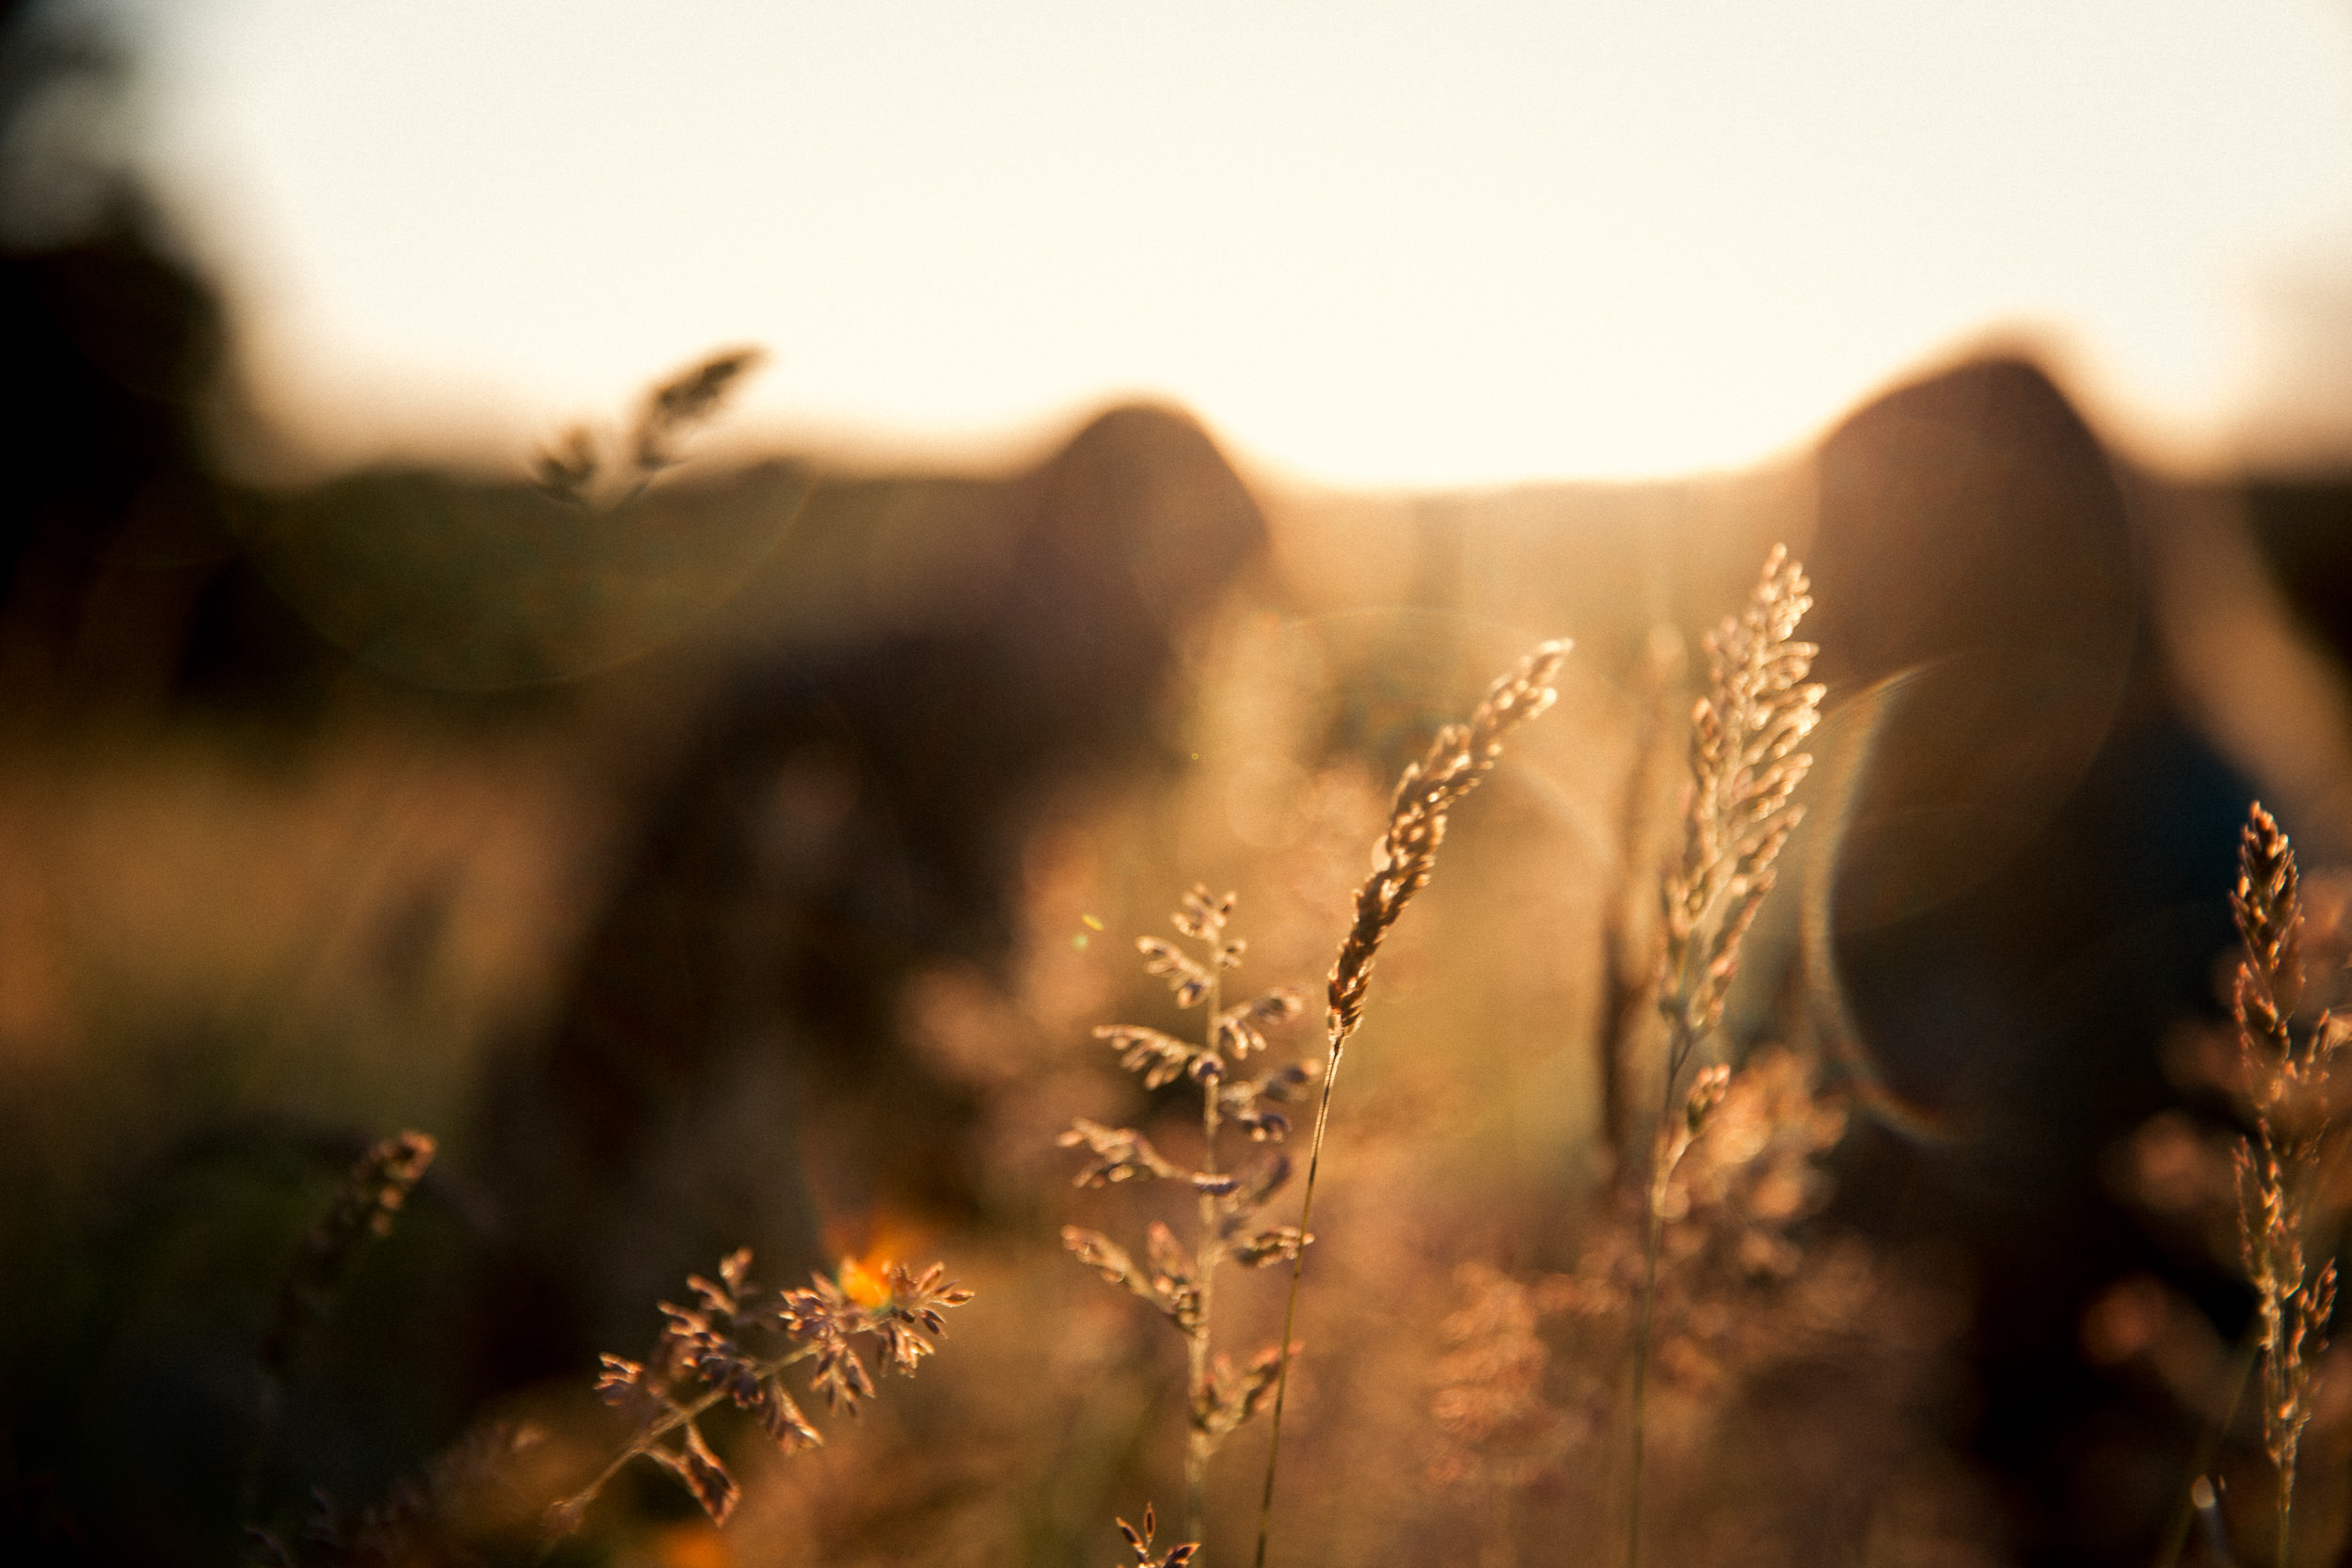 clairebyrnephotography-wedding-photography-ireland-engagement-sunset-farm-horses-56.jpg